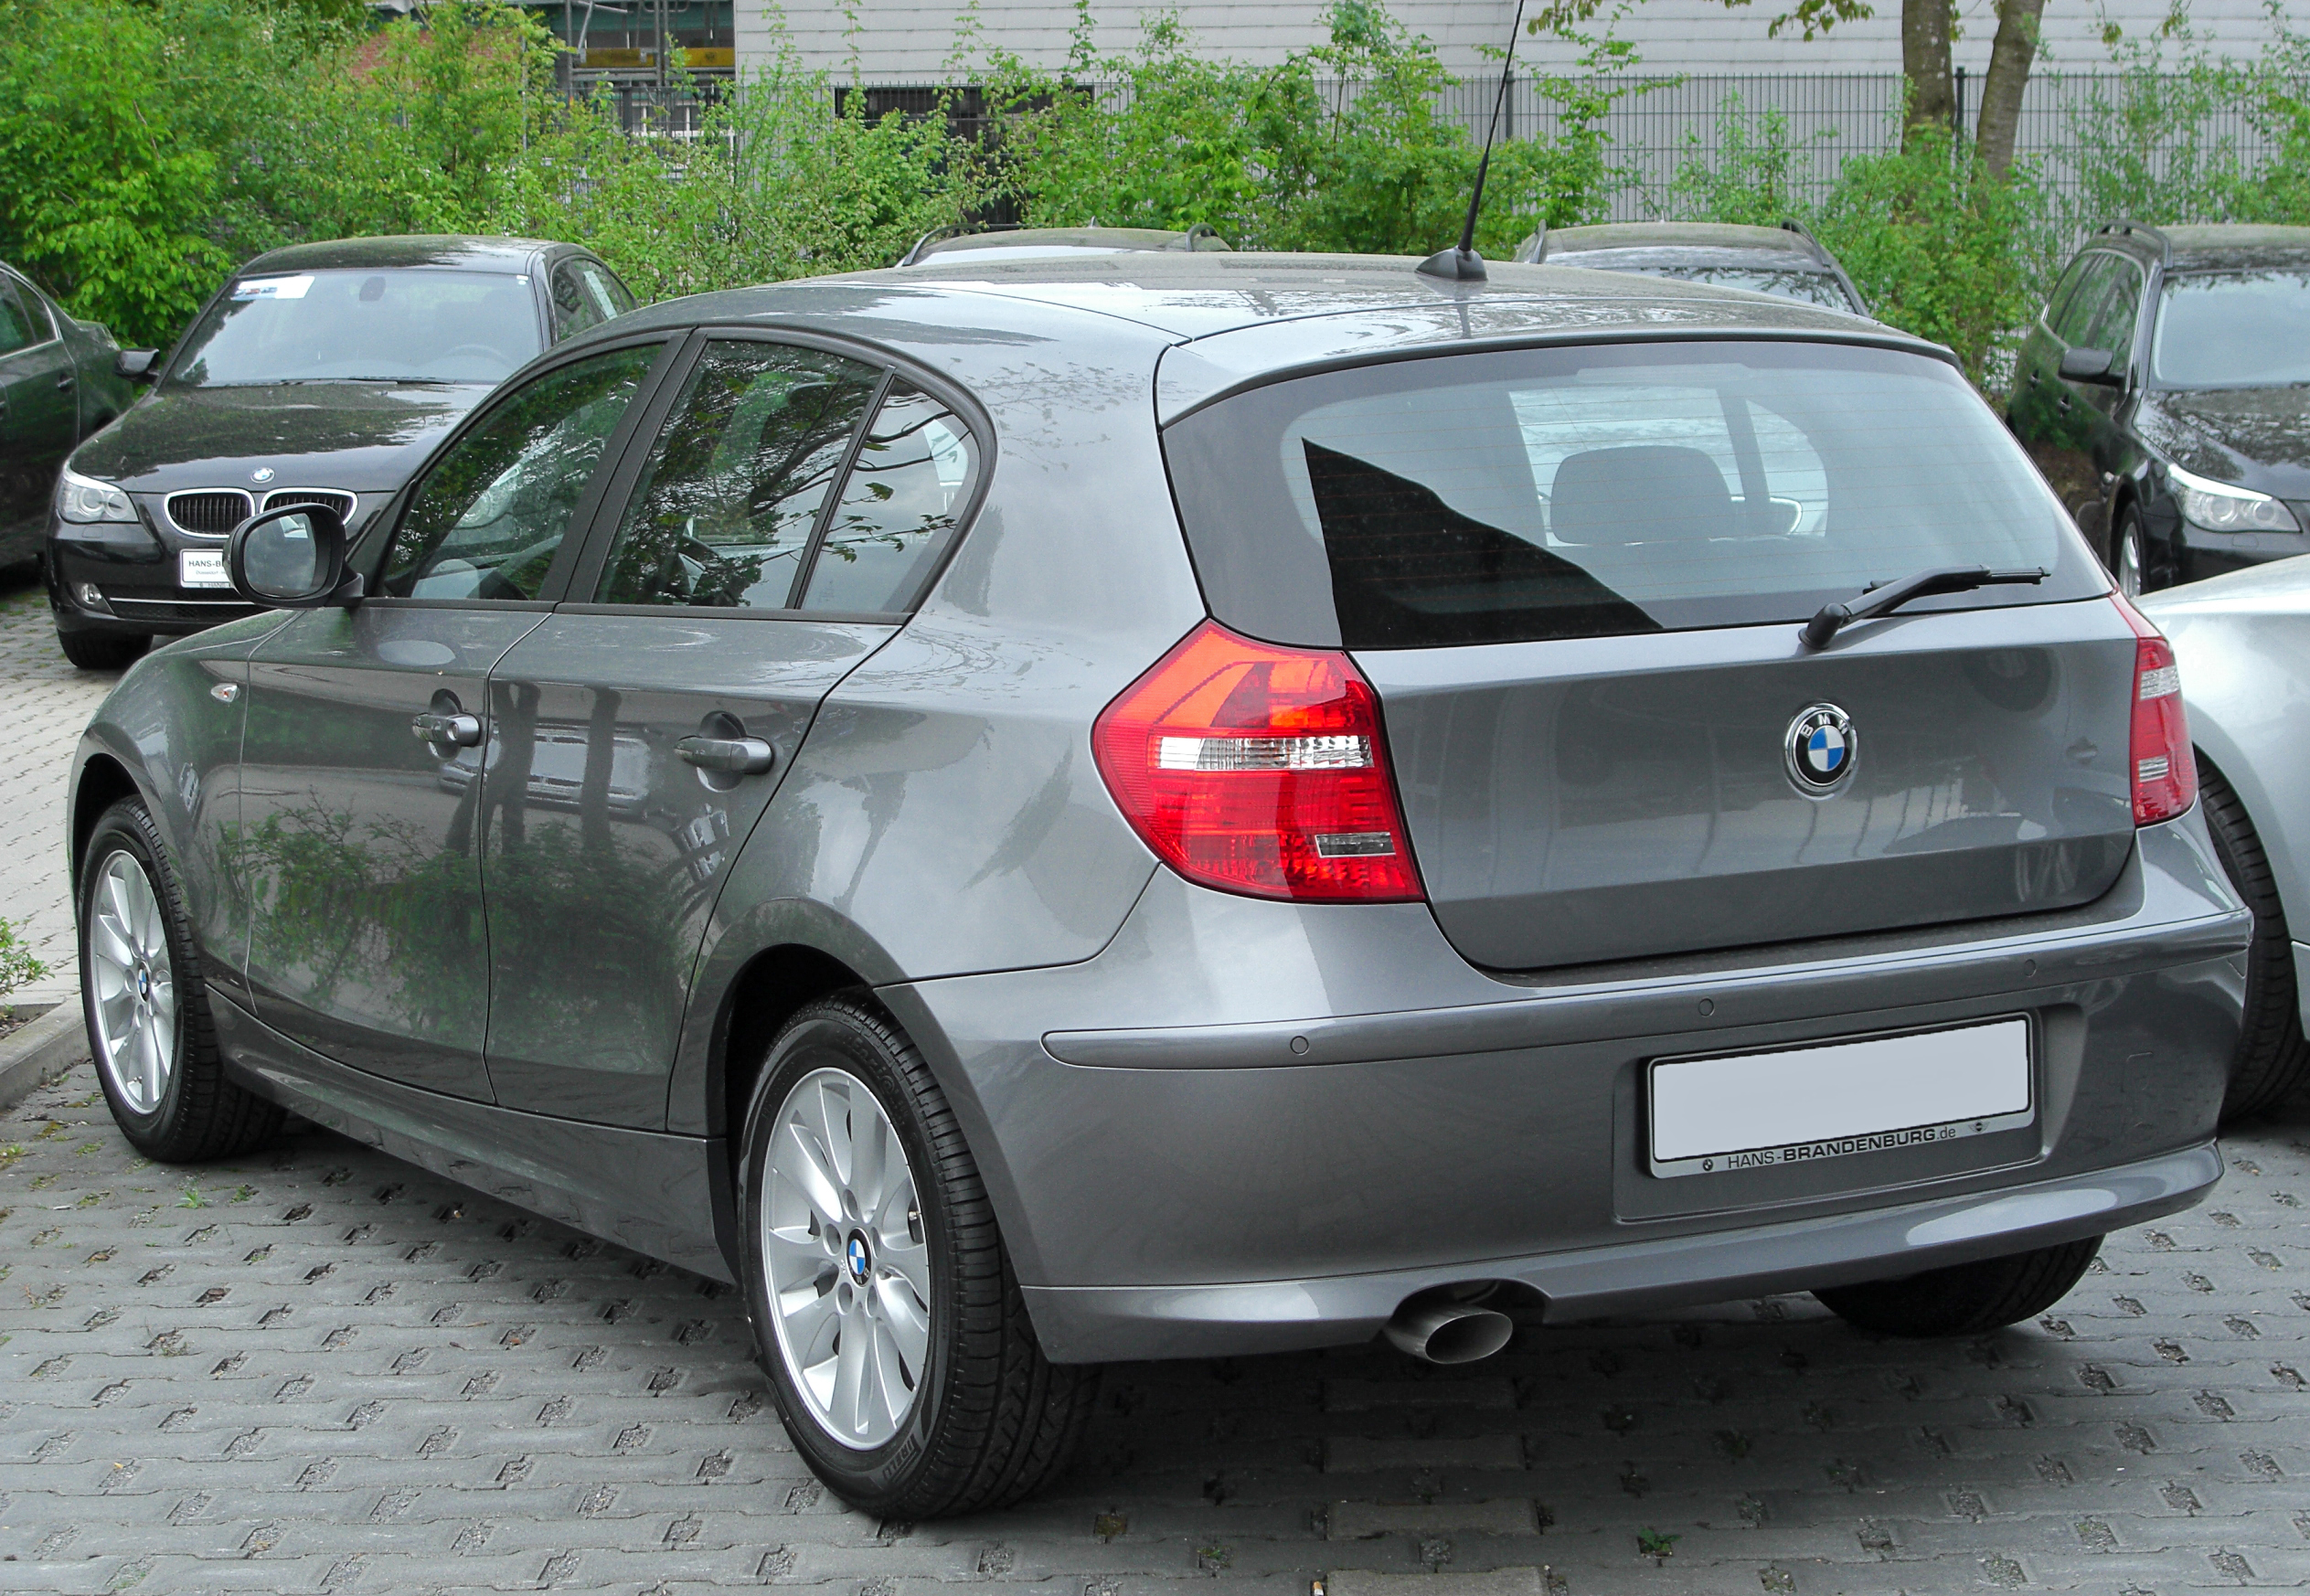 file bmw 1er facelift rear wikimedia commons. Black Bedroom Furniture Sets. Home Design Ideas